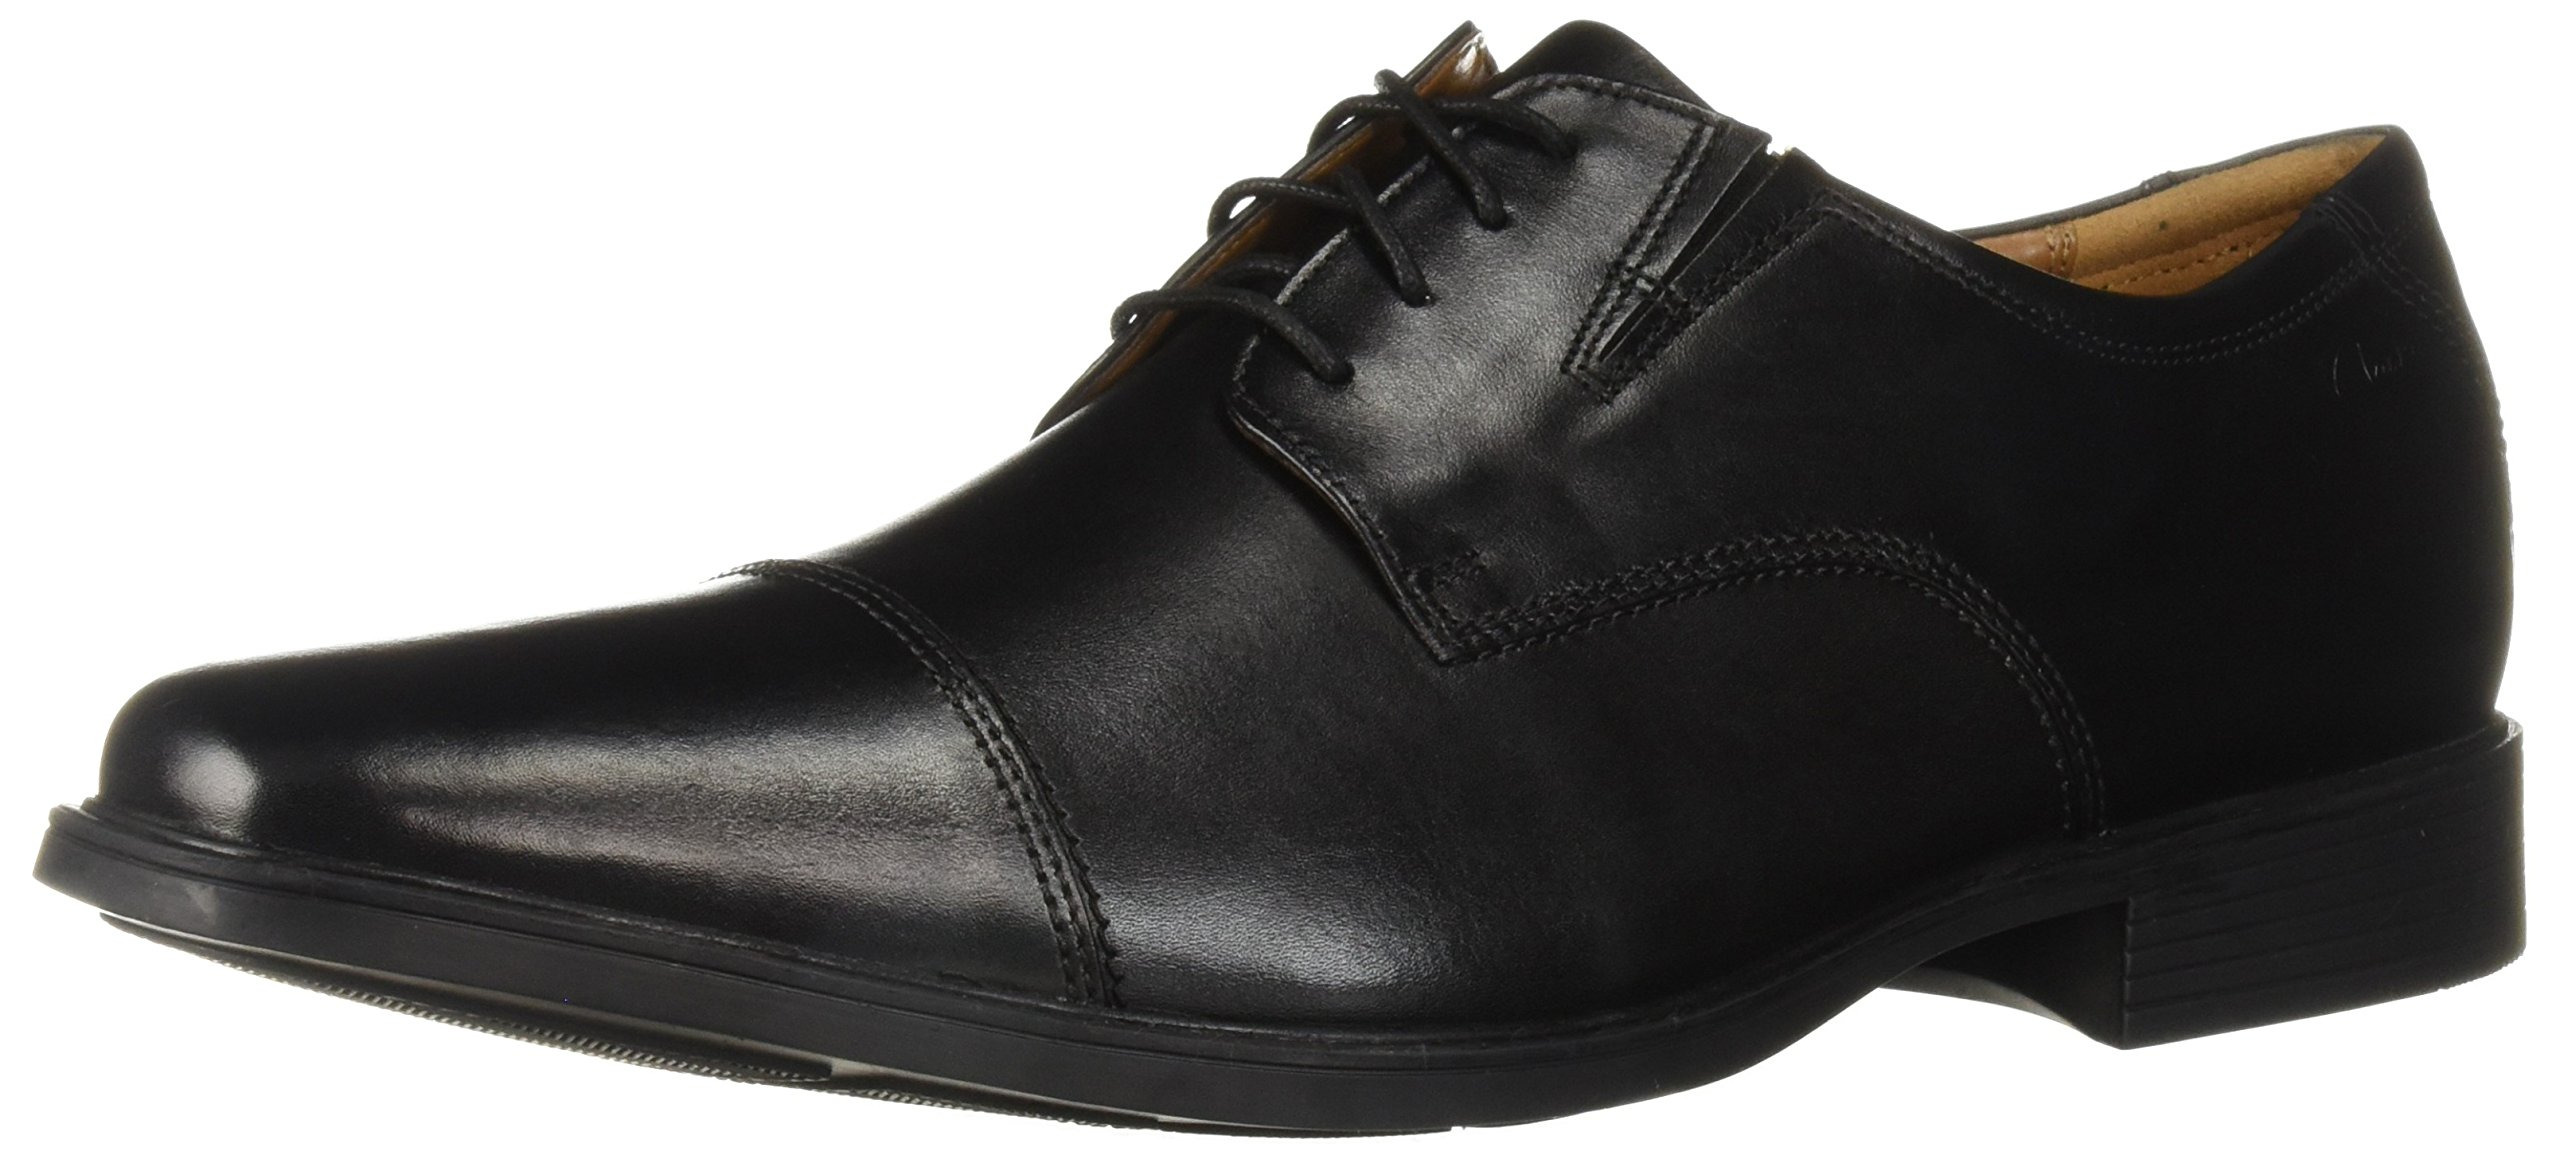 Clarks Men's Tilden Cap Oxford Shoe,Black Leather,13 M US by CLARKS